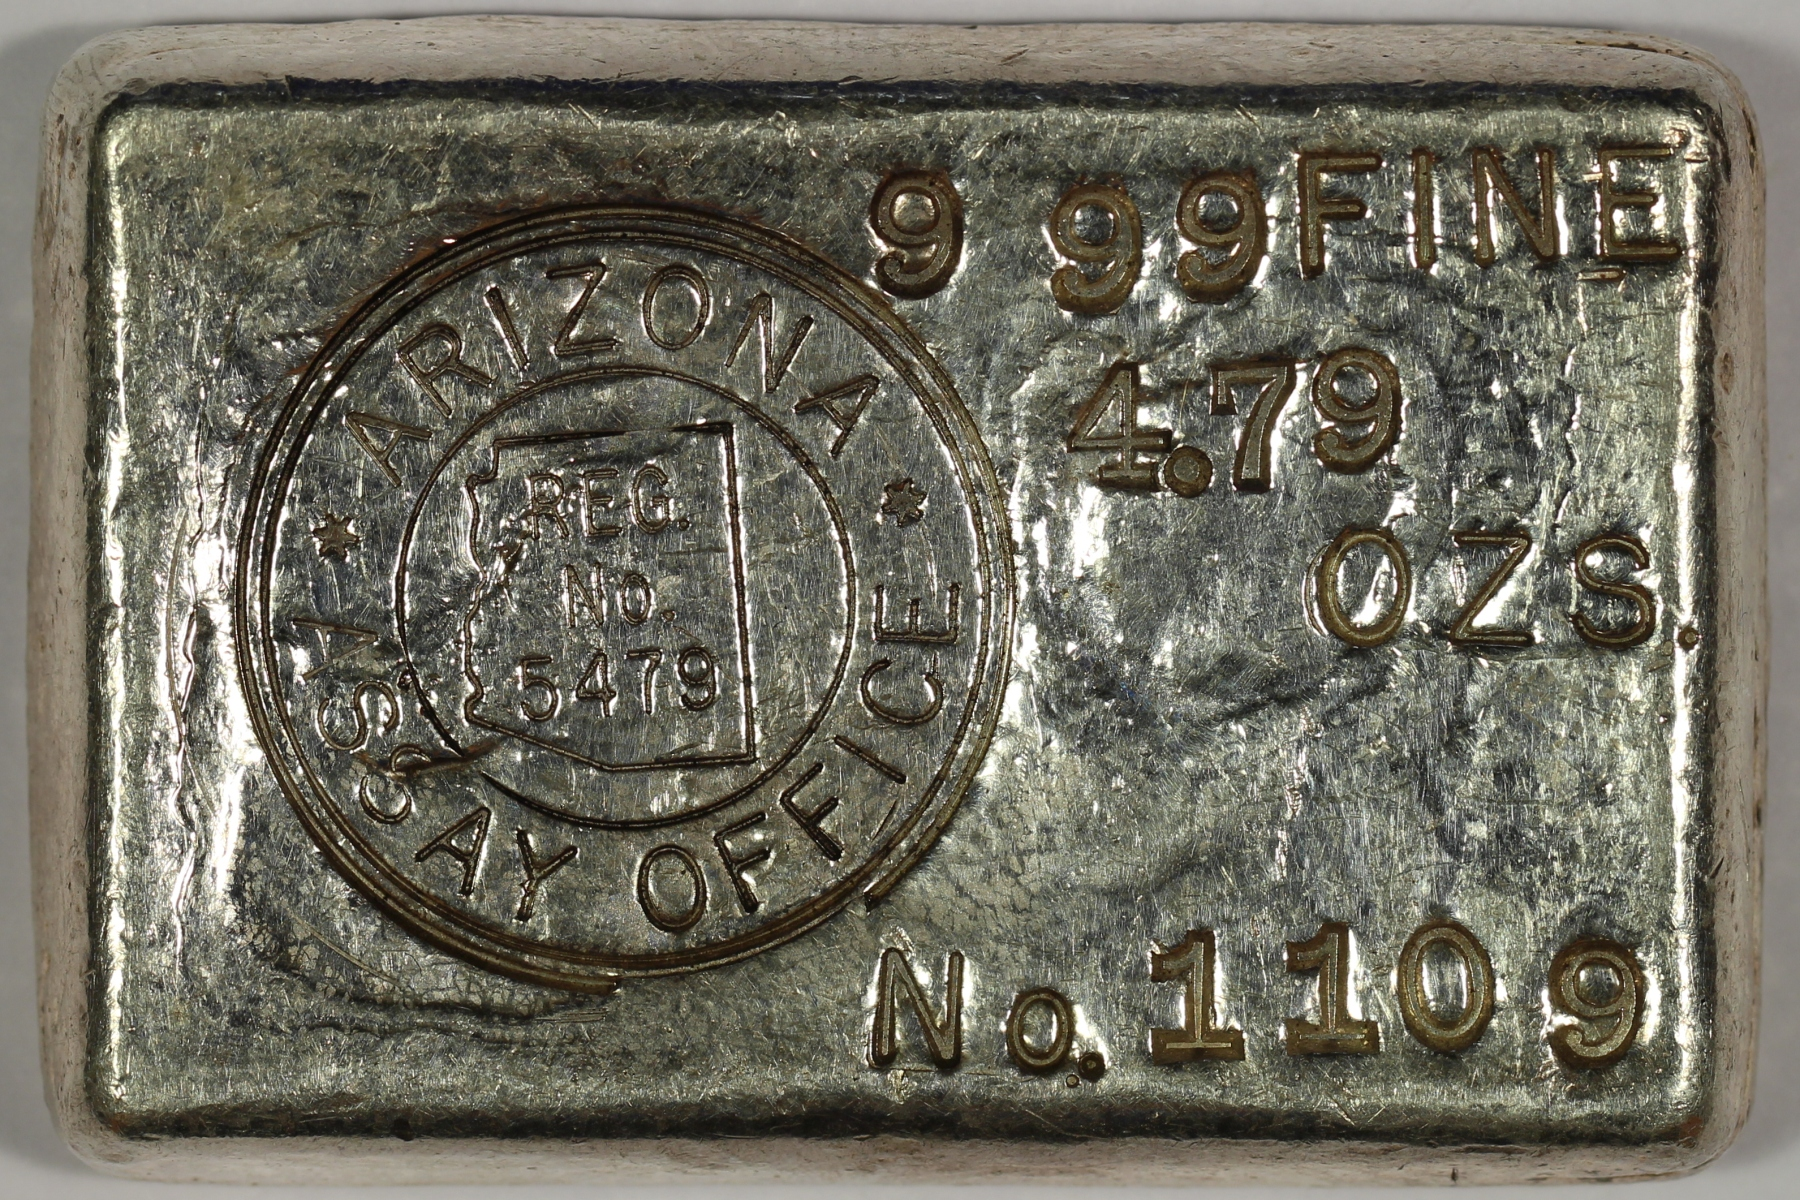 Arizona Assay Office 4.79 oz. 999 Fine Silver Bar